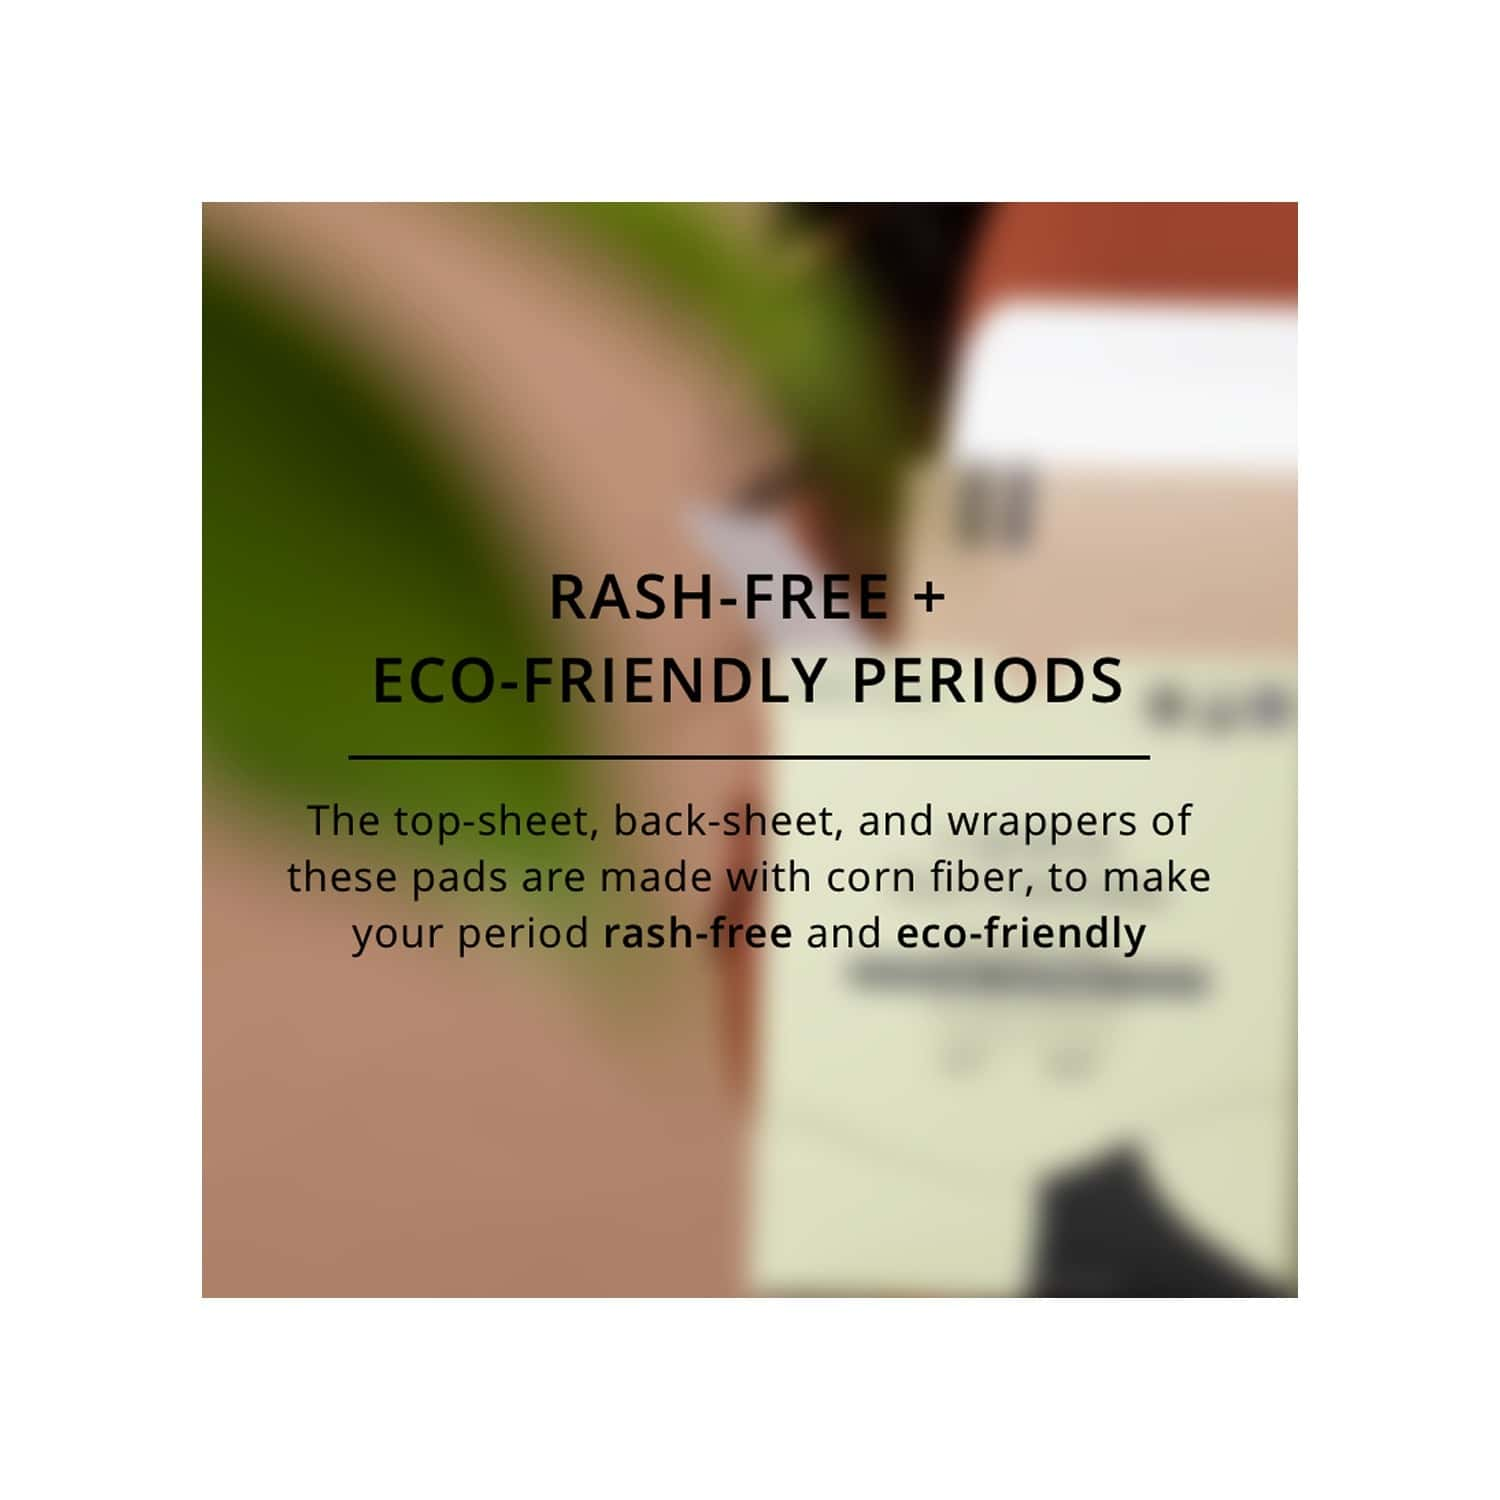 Carmesi Eco-conscious - Sanitary Pads For Rash-free + Eco-friendly Periods (30 Large)